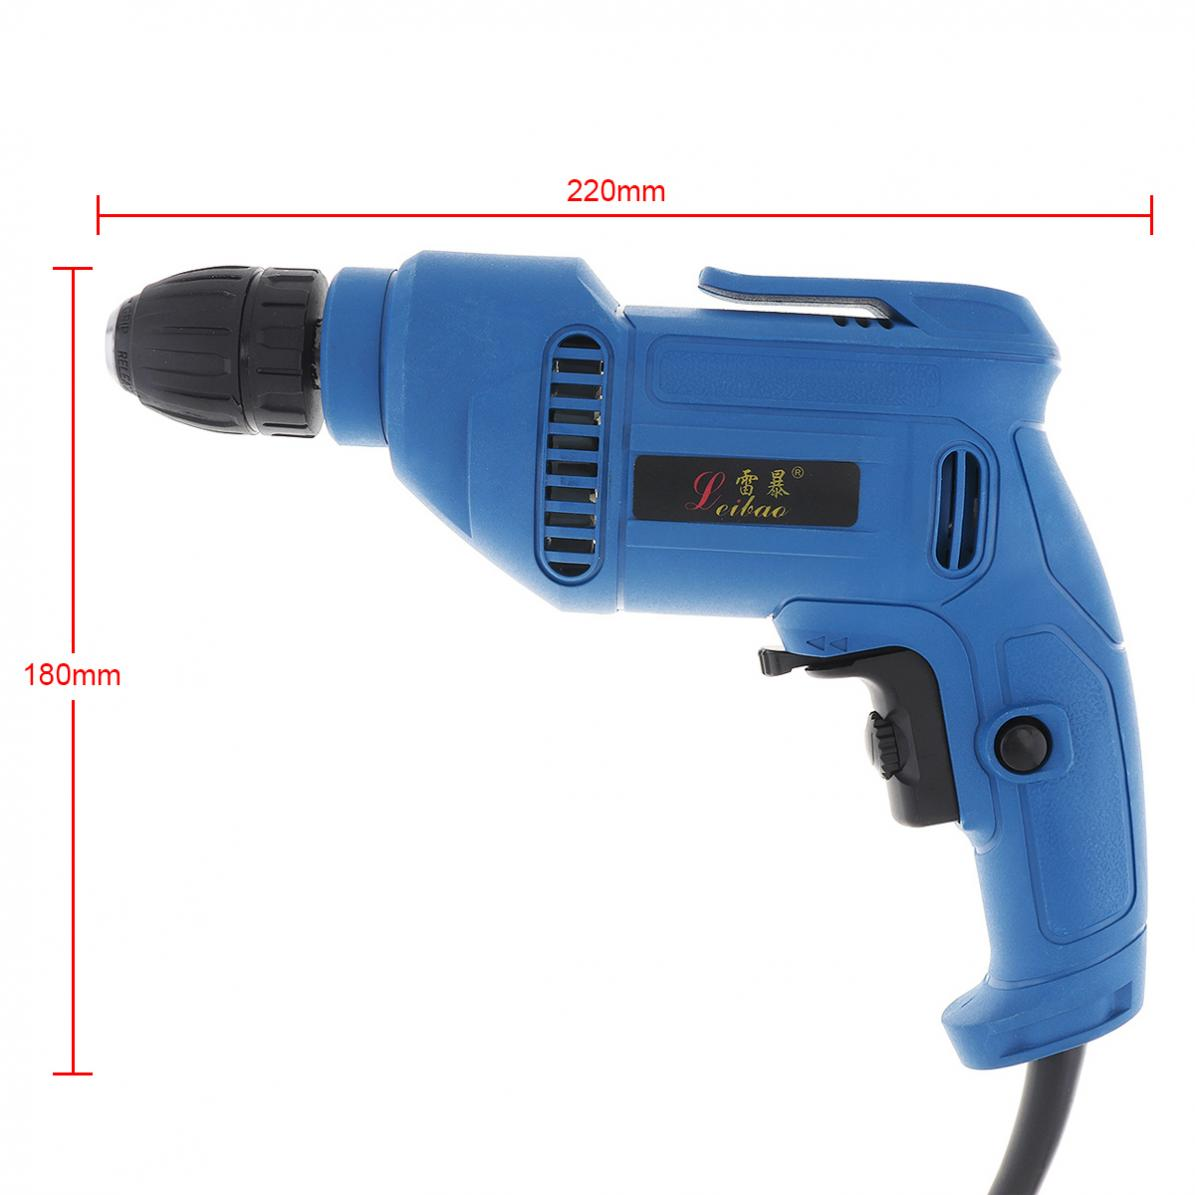 220V-600W-Handheld-Electric-Impact-Wrench-Drill-Screwdriver-w-10mm-Drill-Chuck miniature 3